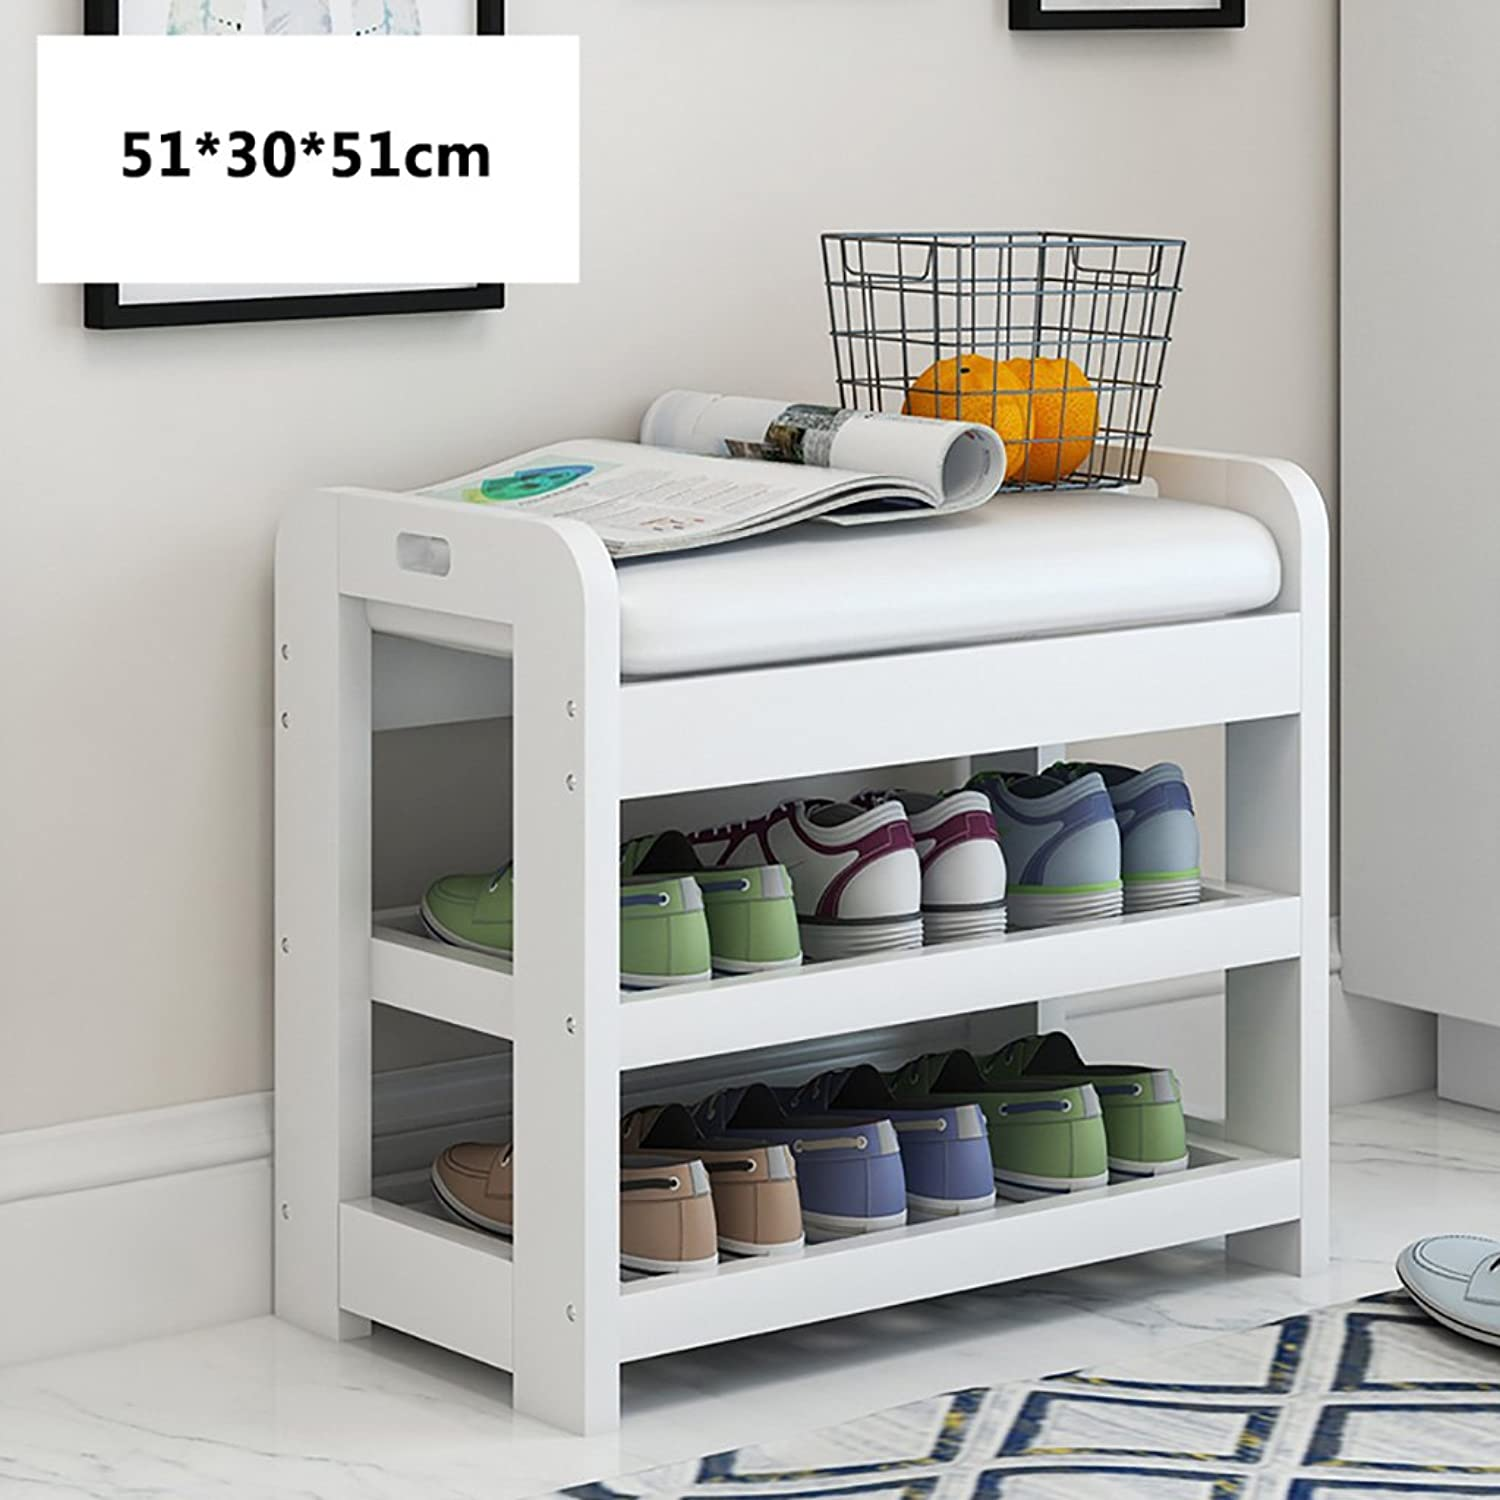 NSS shoes Racks 3 Tier shoes Bench Wooden Leather Storage Rack Living Room Bedroom Corridor shoes Bench (color   B)